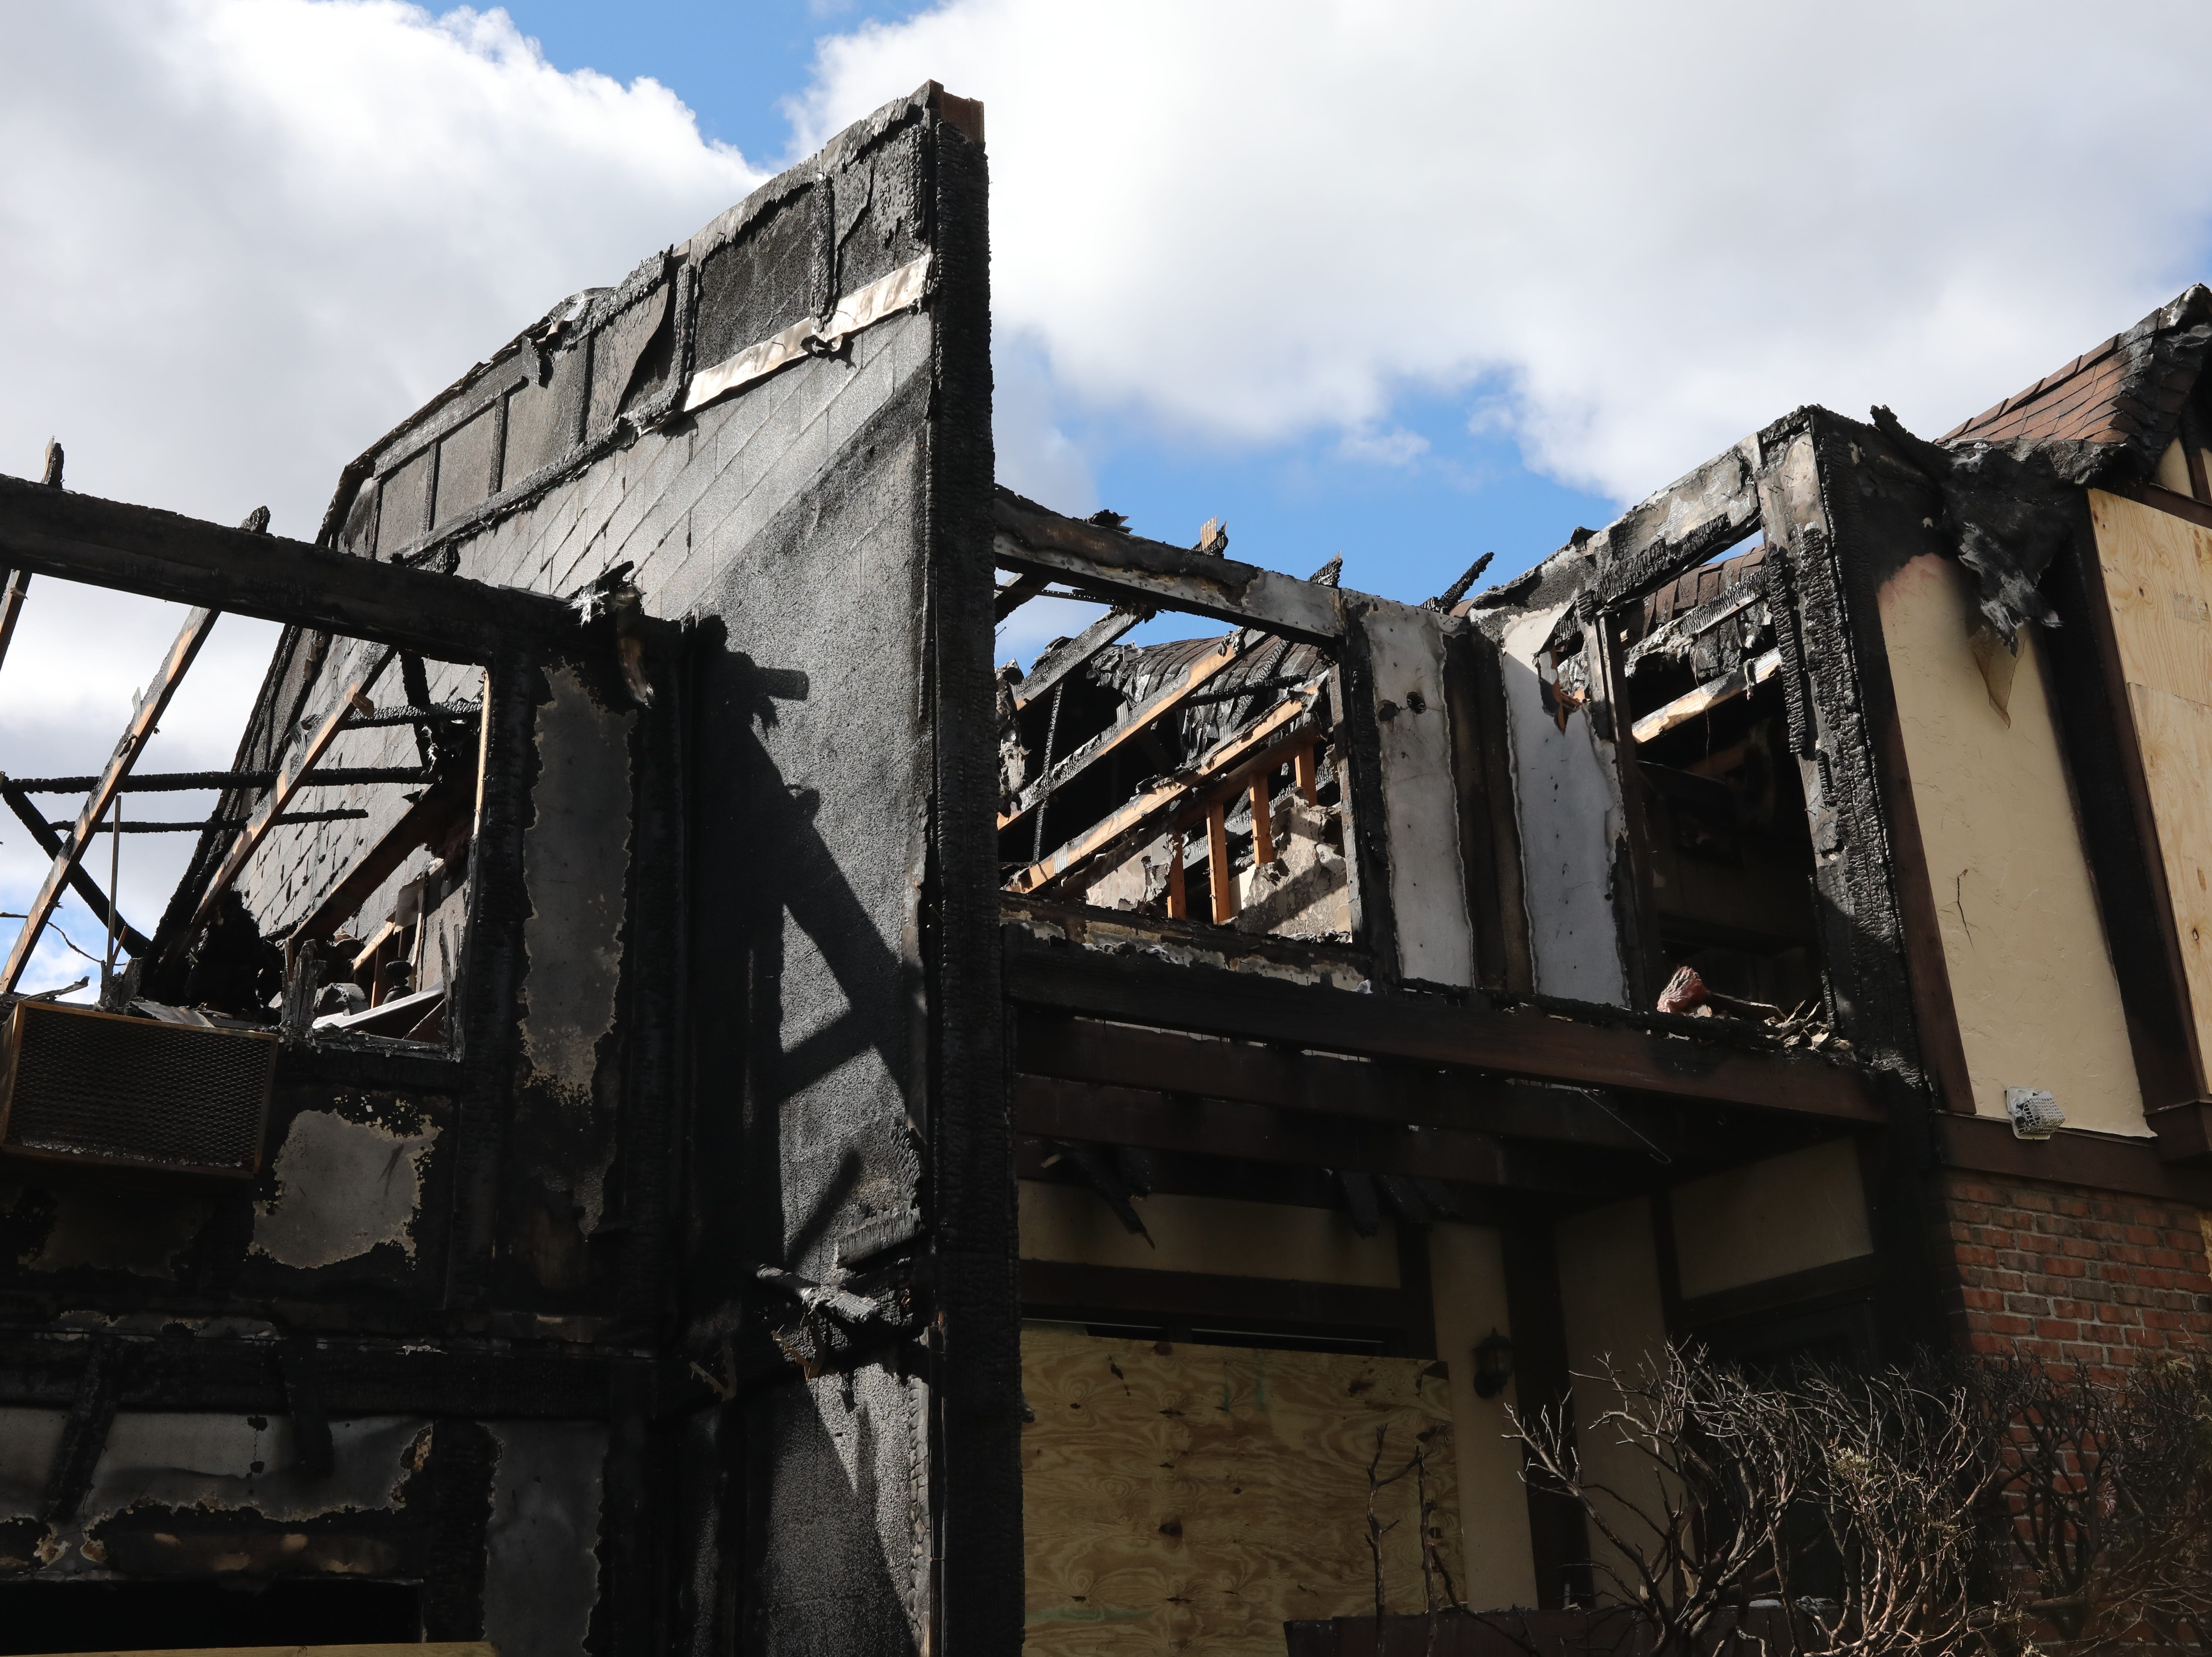 The aftermath of an April 14 fire that burned a building at Mountainview Condominiums in Valley Cottage April 15, 2019. The fire jumped a firewall and spread to the adjacent unit.